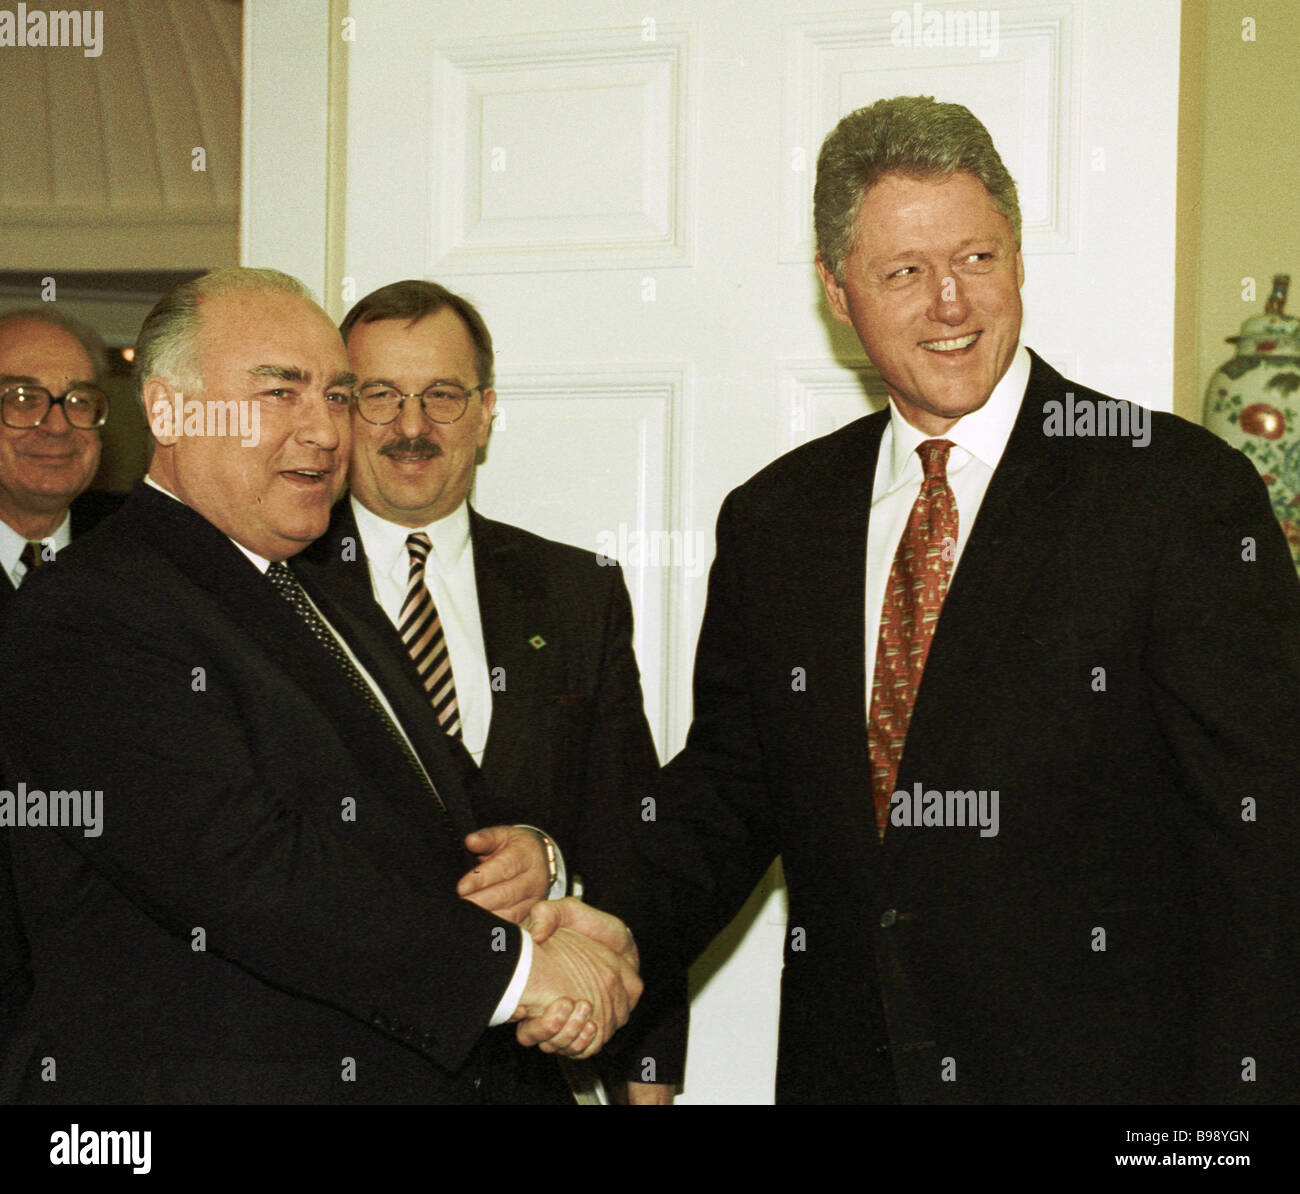 Russian prime minister viktor chernomyrdin left greeting us russian prime minister viktor chernomyrdin left greeting us president bill clinton during his visit to the us kristyandbryce Images